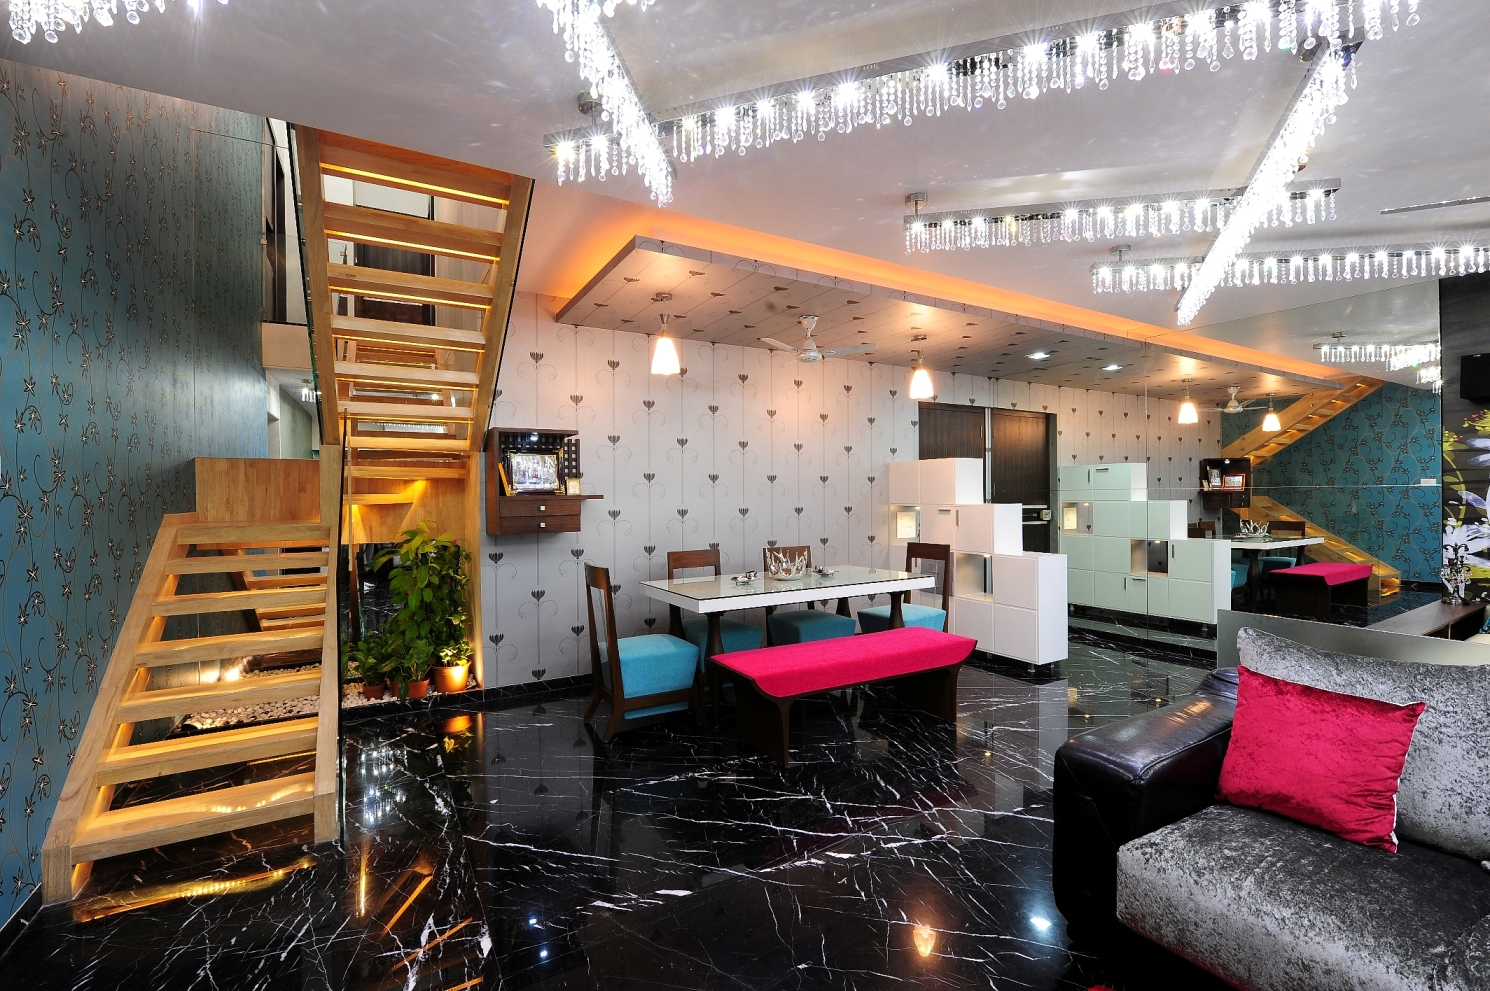 Design of a dining room by architecture design art pvt ltd for Arch design architects limited